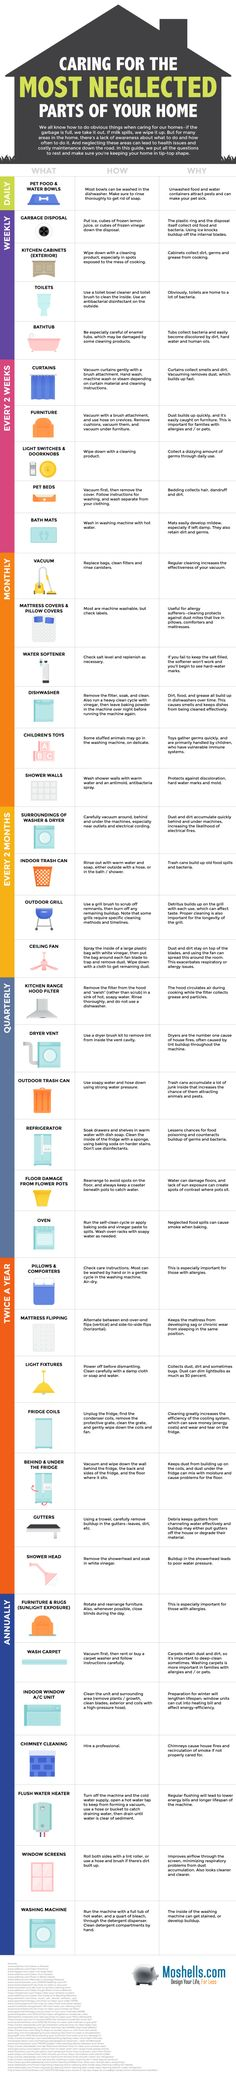 Caring for the Most Neglected Parts of your Home #infographic #HomeImprovements